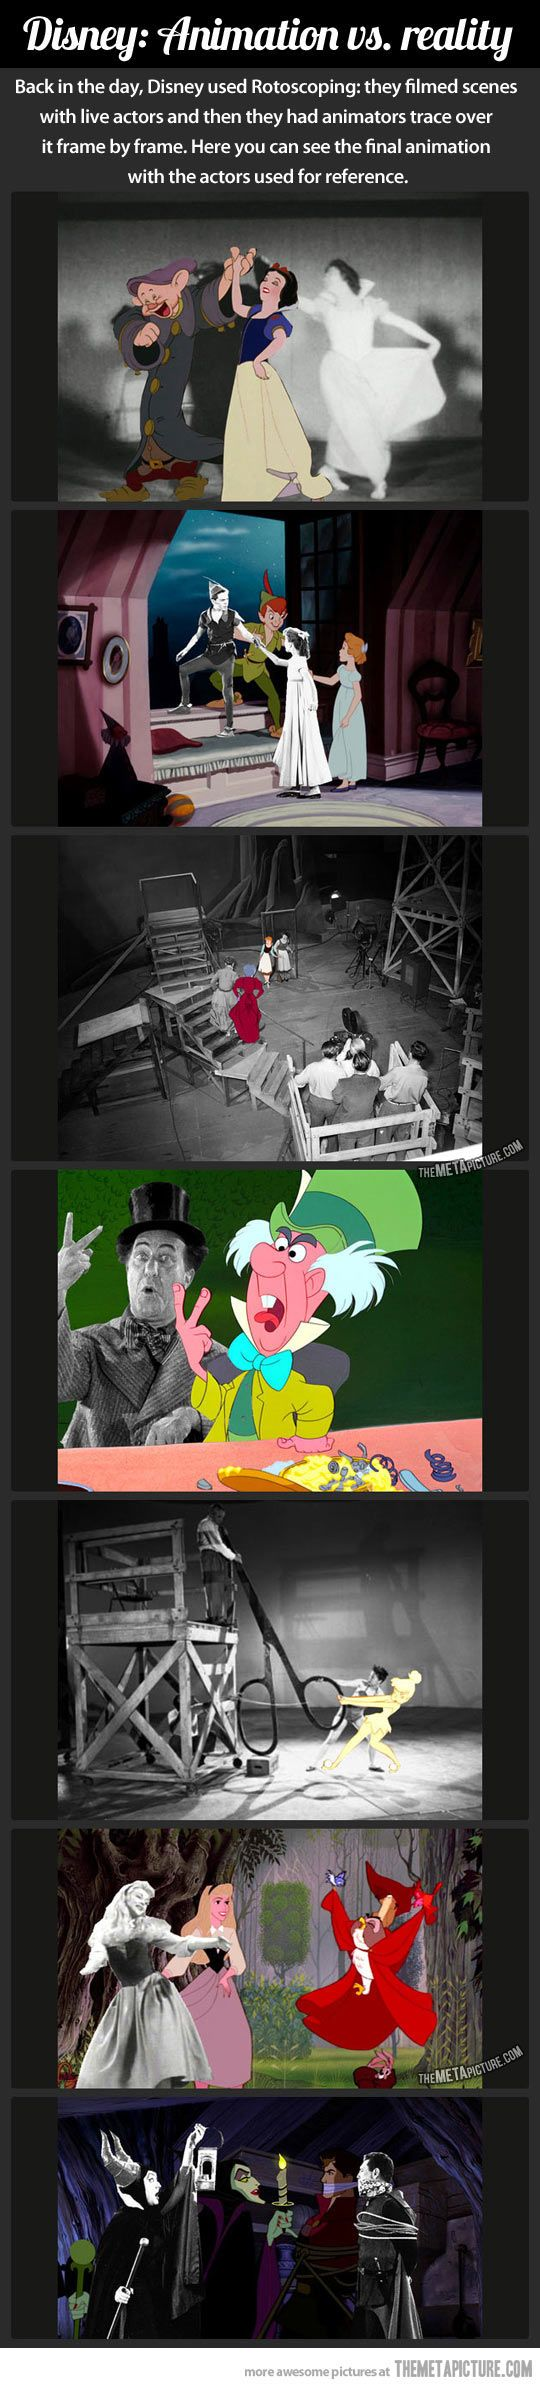 Disney animations spliced with the actors posing for reference. I love this!